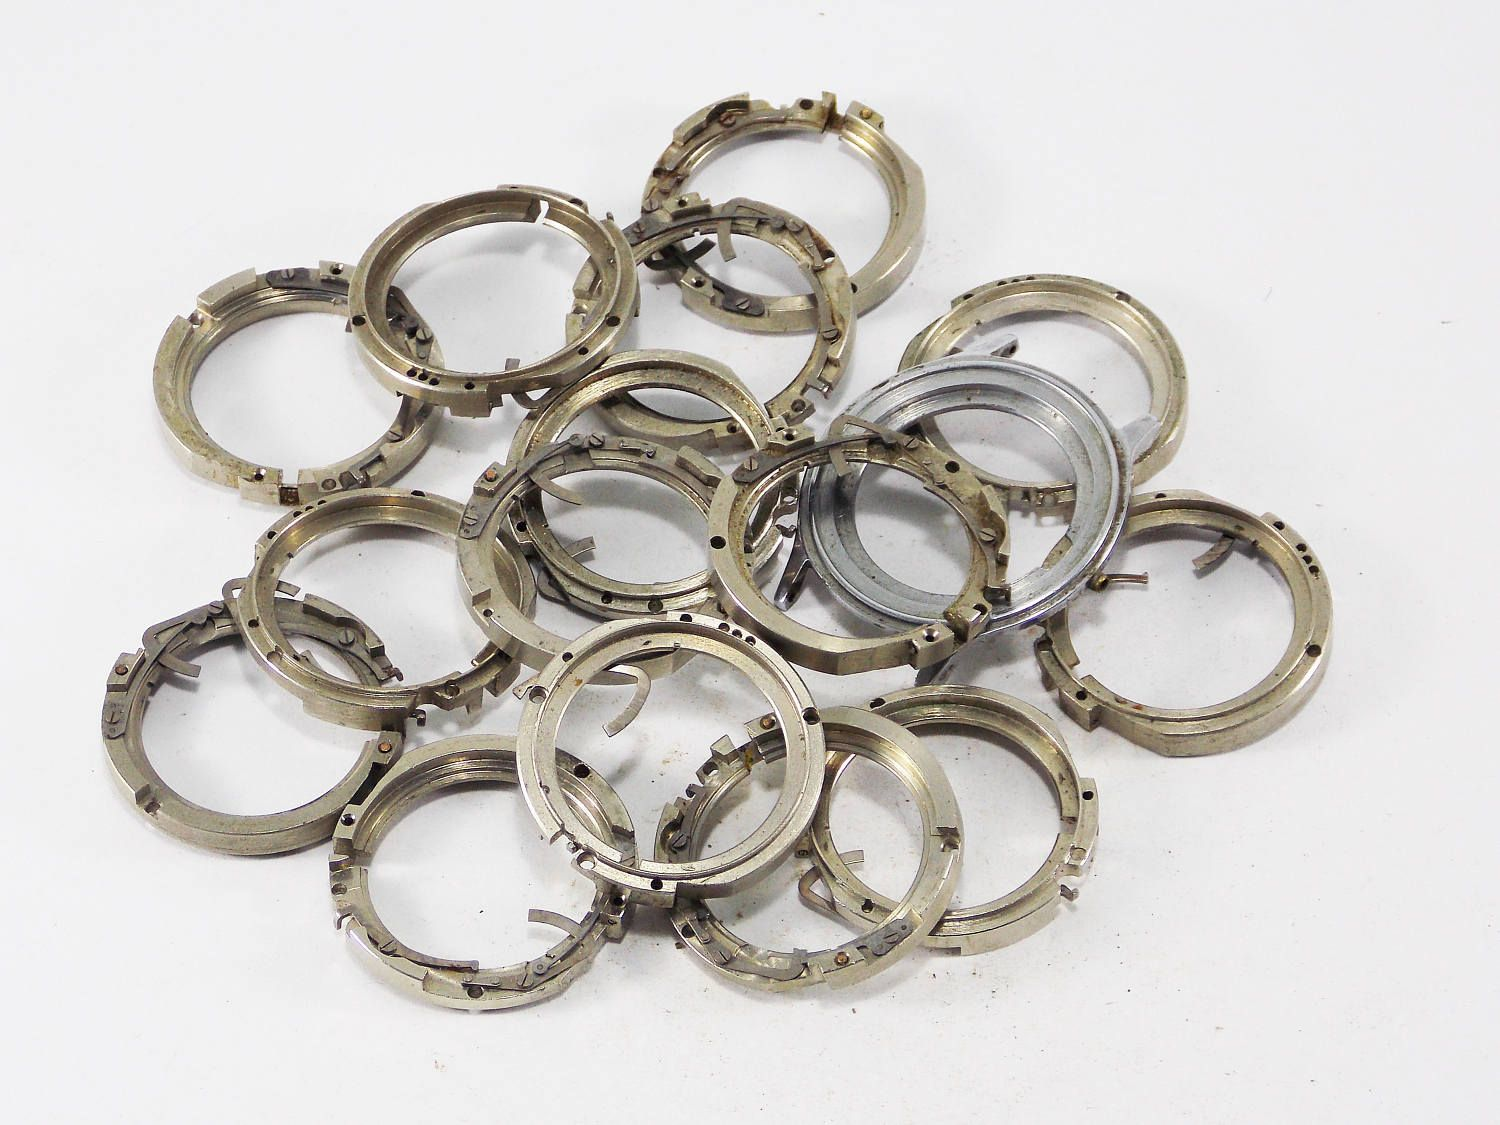 29+ Metal rings for crafts large ideas